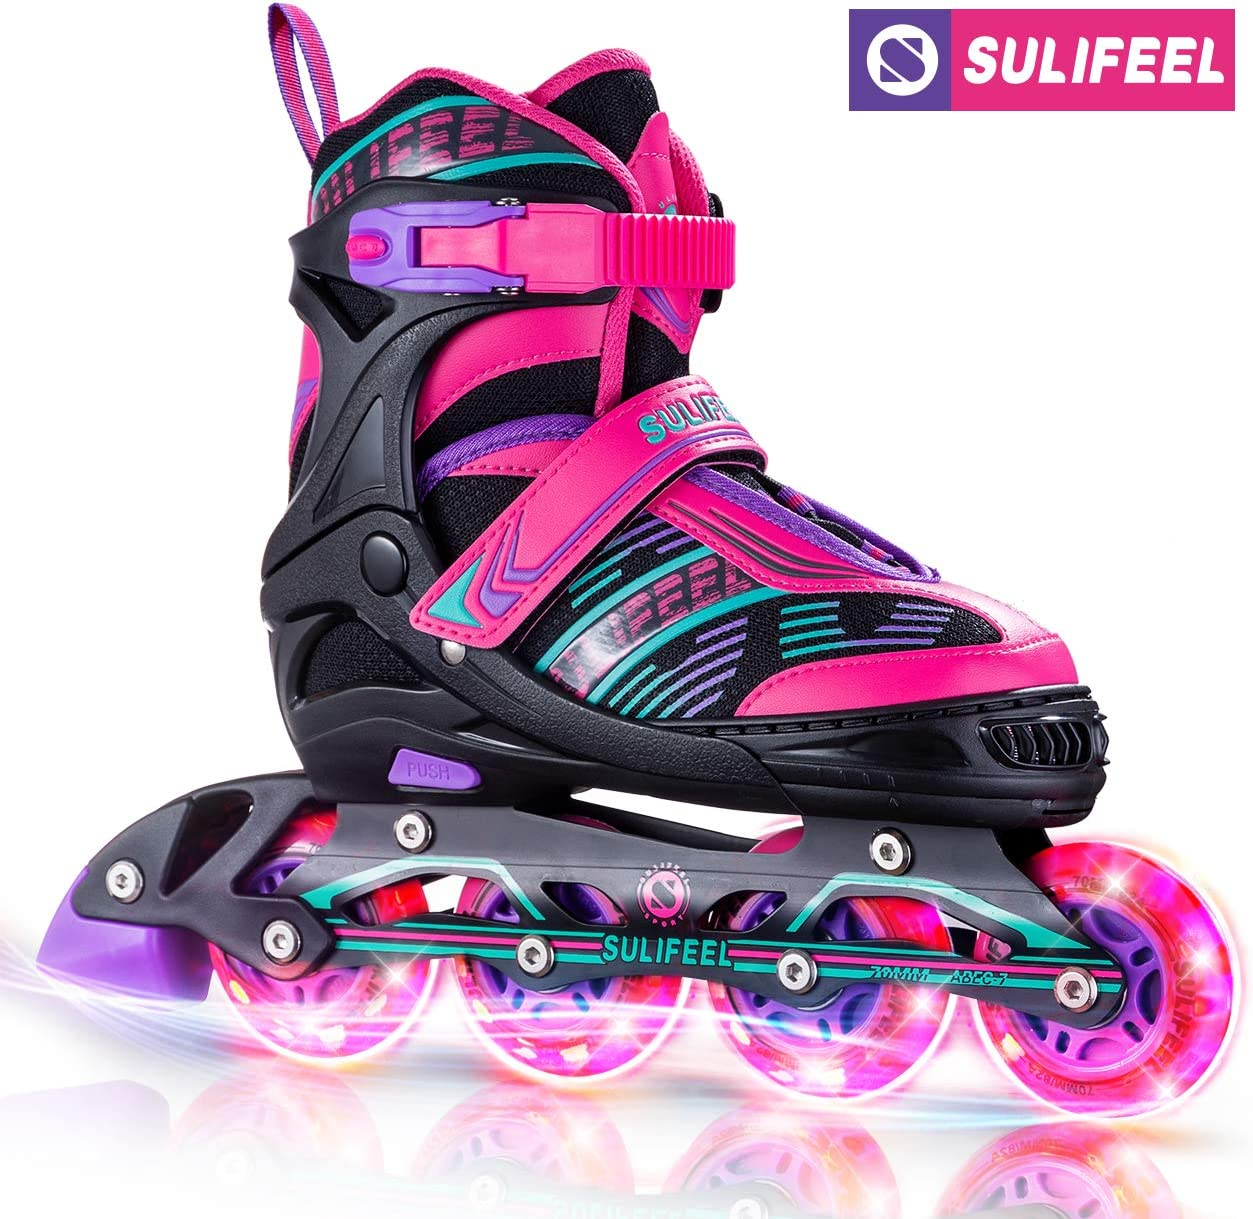 Sulifeel Arigena 4 Size Adjustable Light up Inline Roller Skates for Girls and Boys, Roller Blades for Kids and Women Adults Red Purple Green